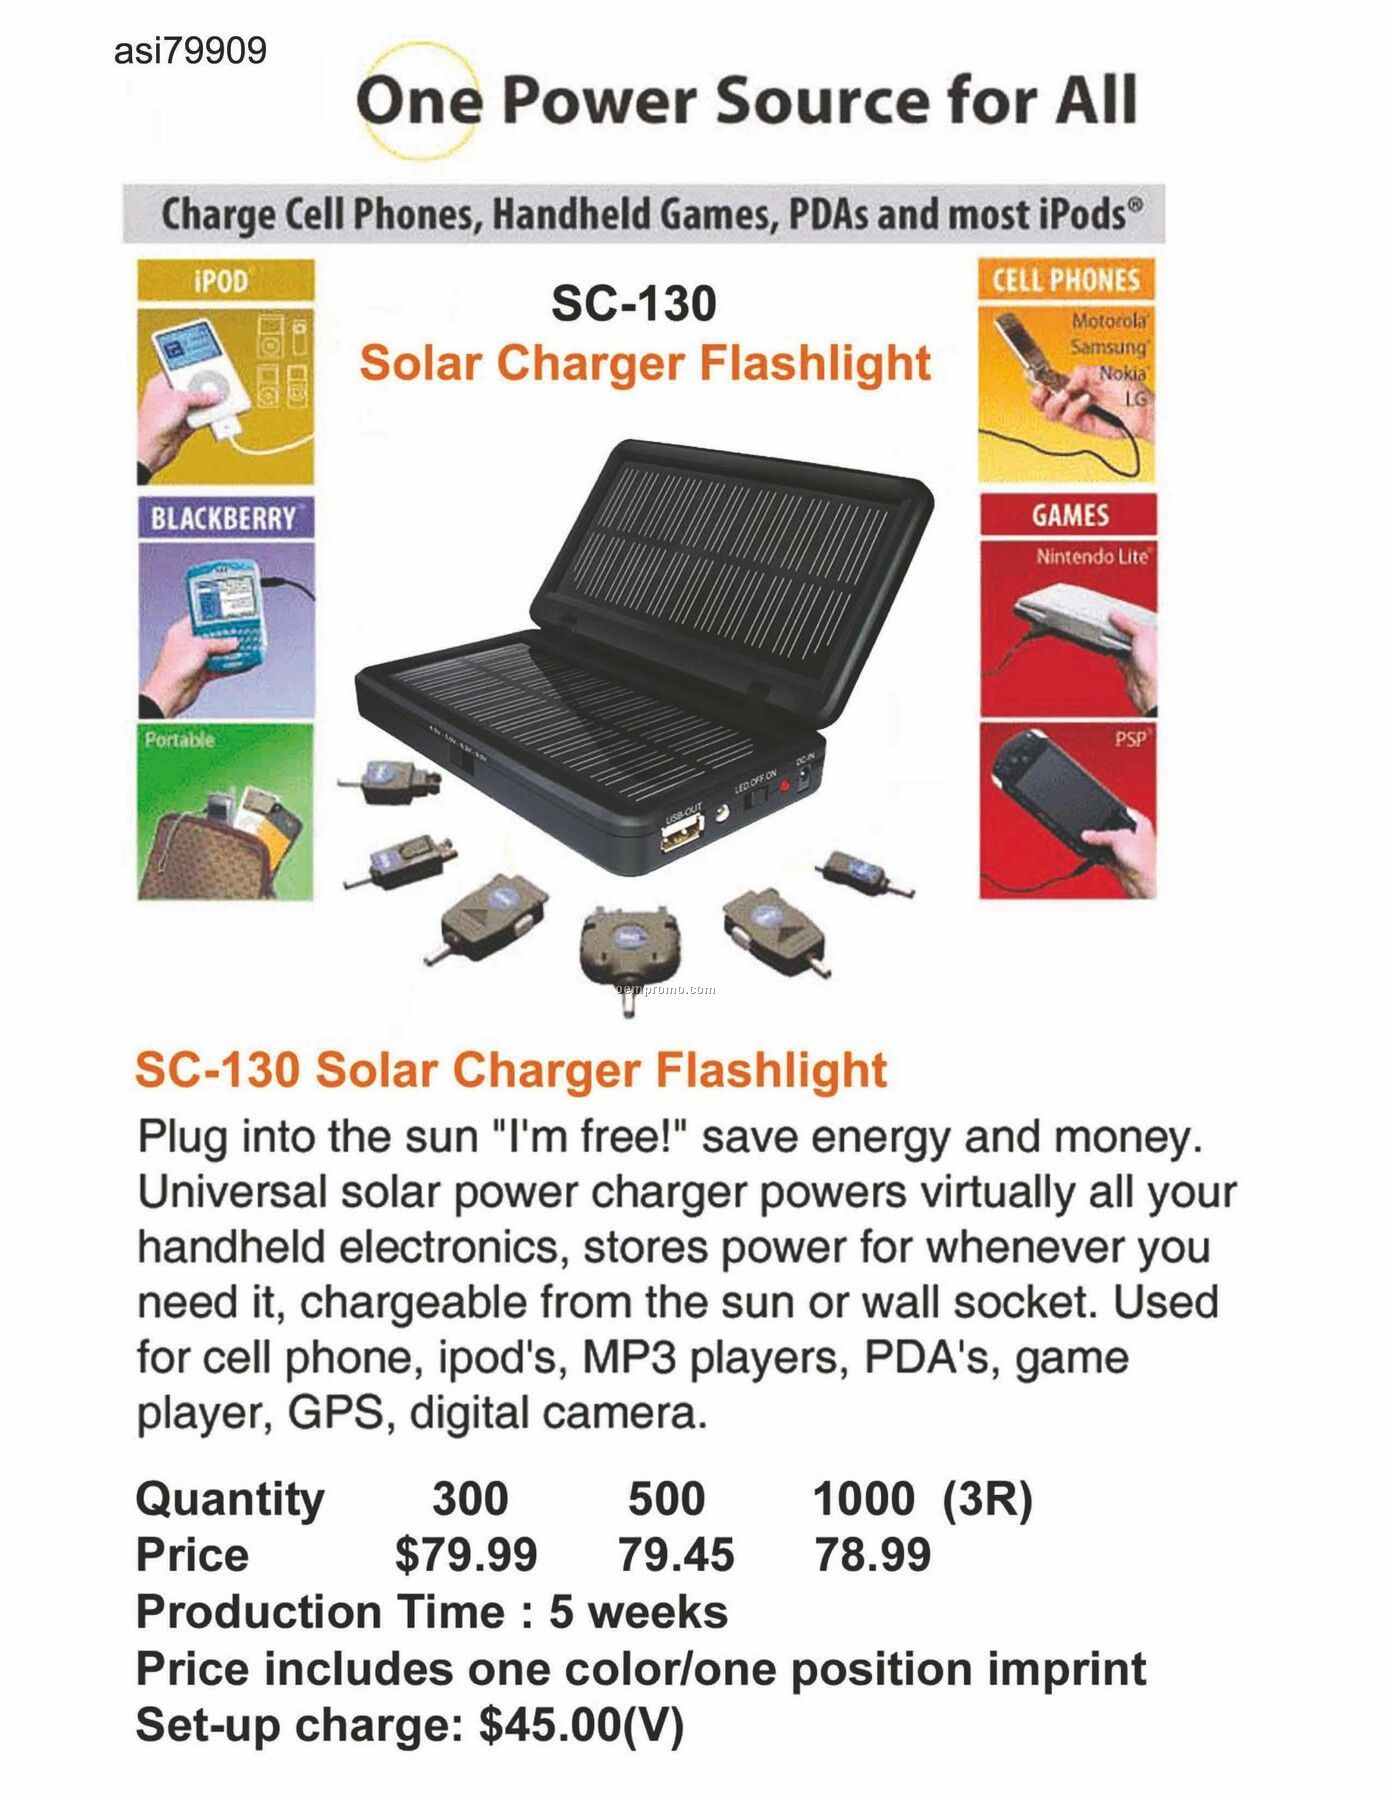 Solar Charger / Flashlight For Iphone, Ipod, Blackberry, Android, Htc